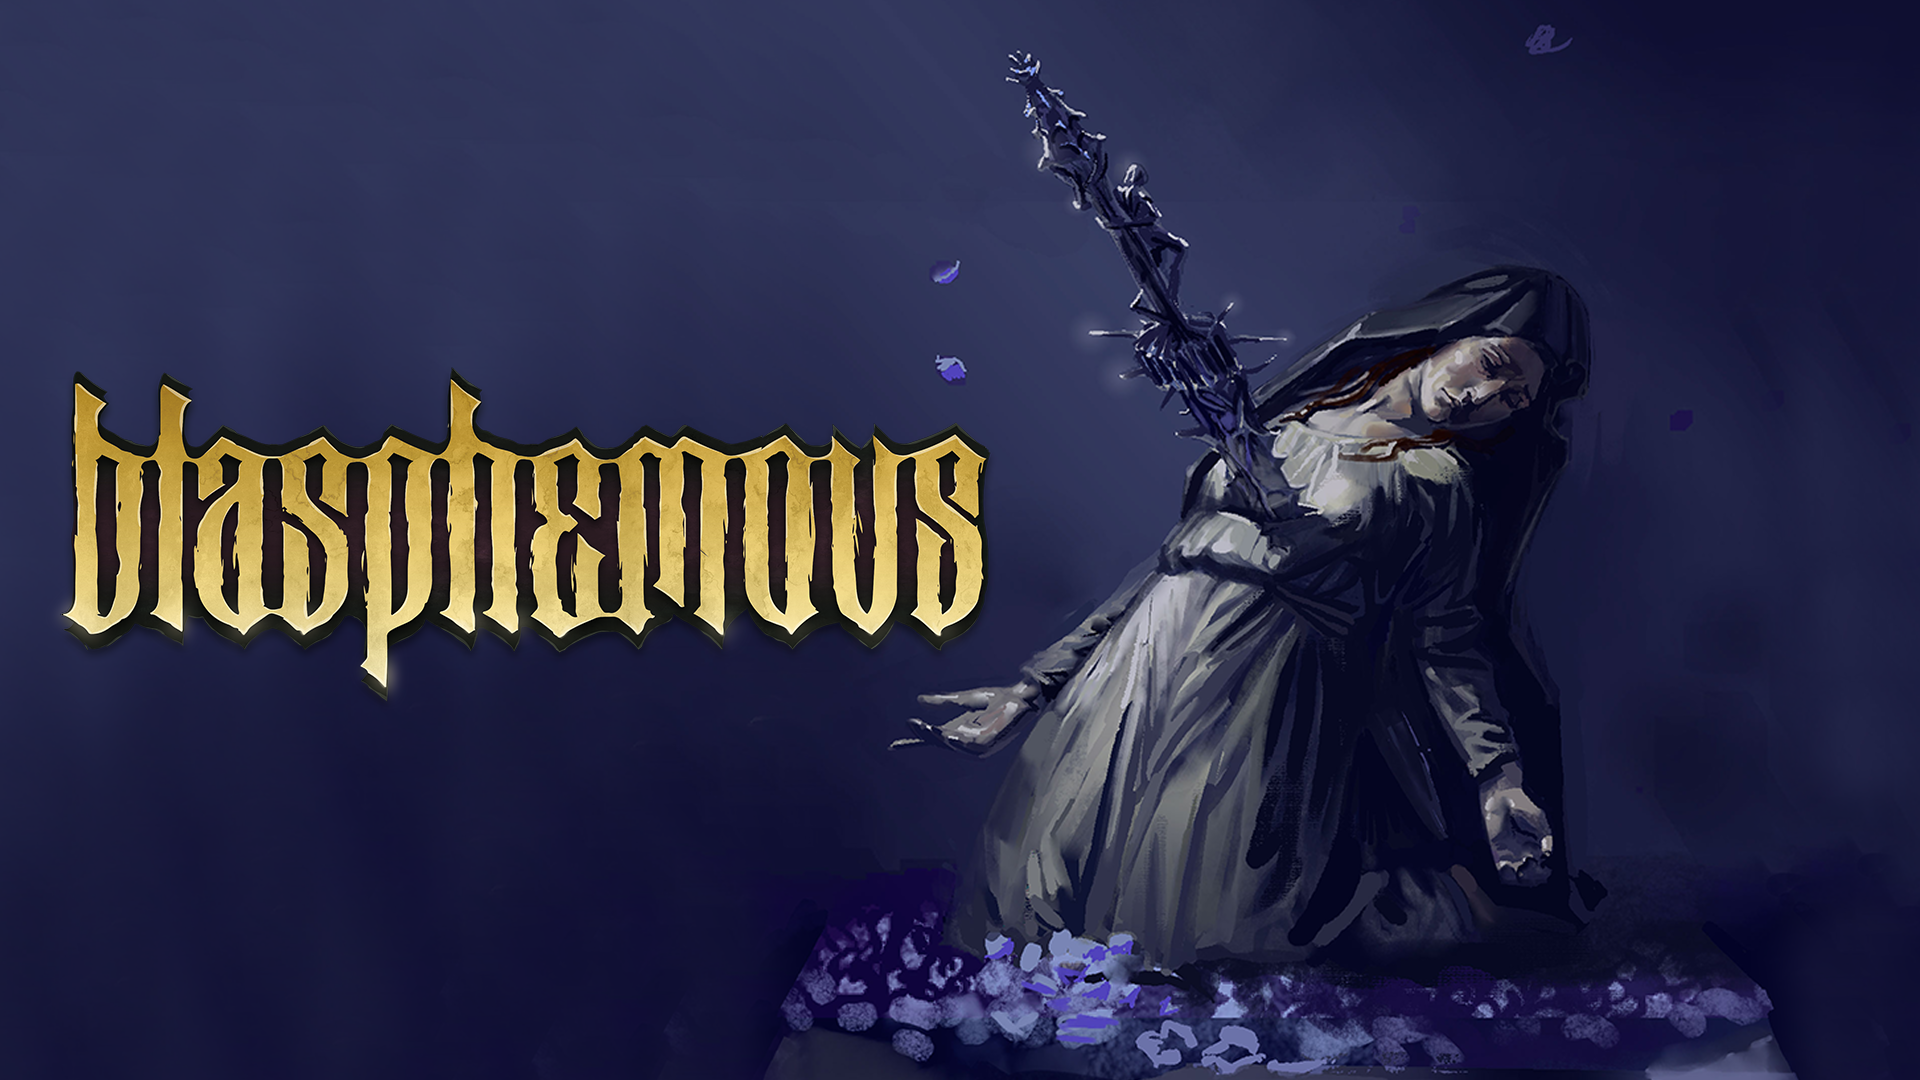 The Time To Repent Is Nigh, Sinners – Blasphemous Release Date Revealed!